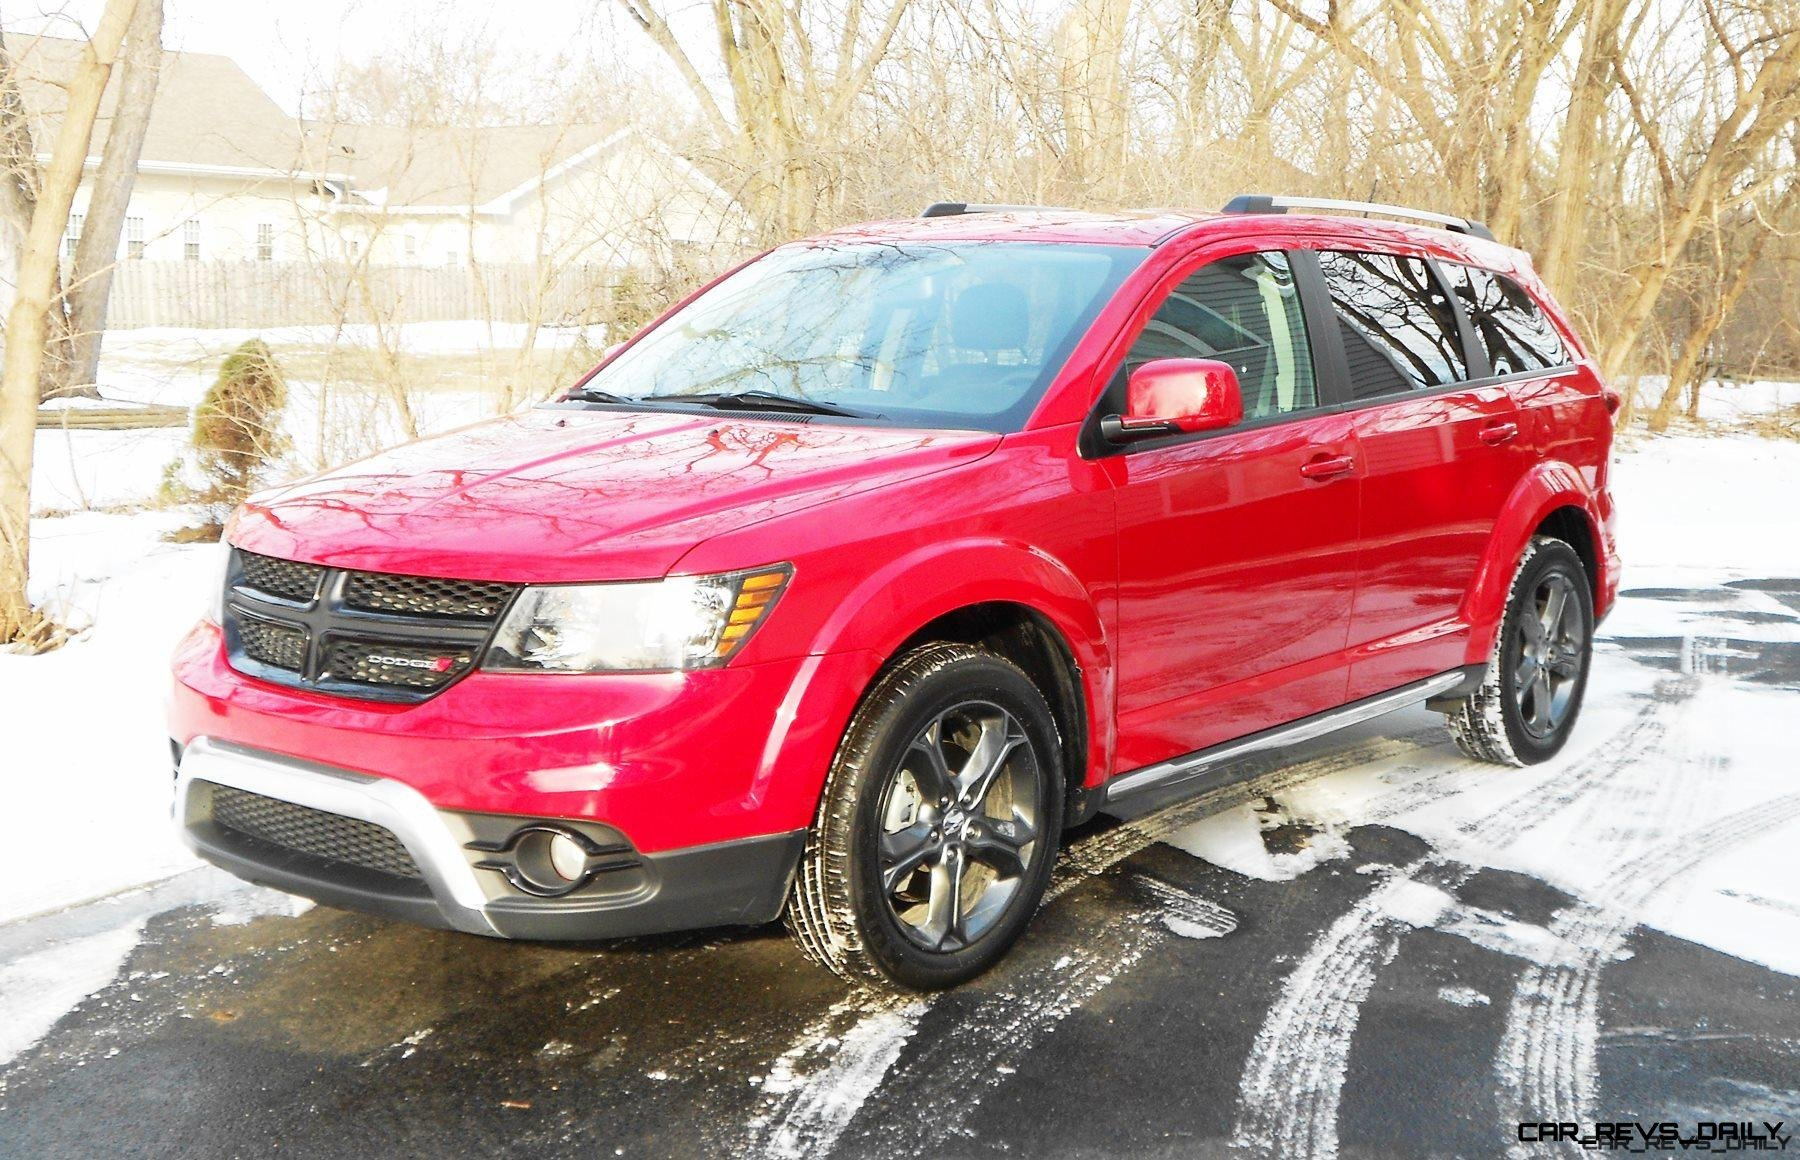 Hawkeye Drives 2016 Dodge Journey Review 14